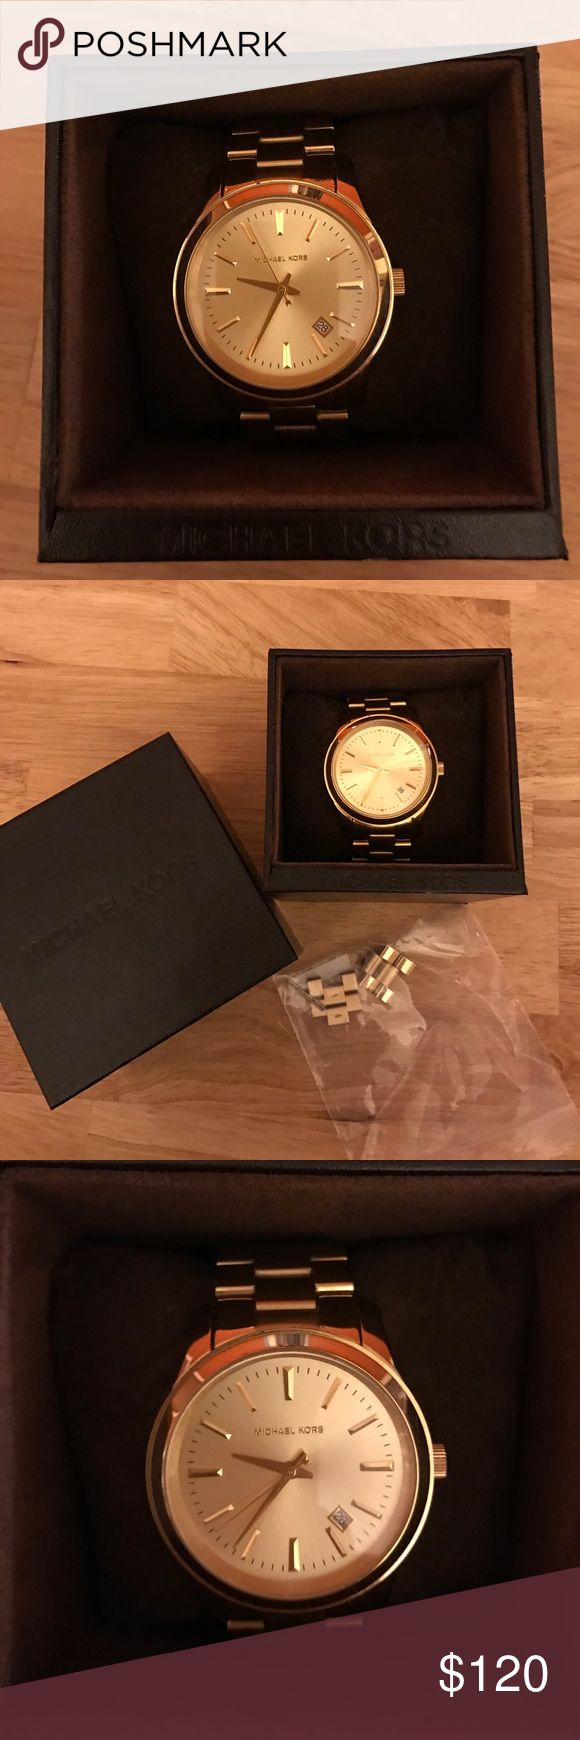 Michael Kors gold Runway watch Michael Kors gold runway watch. Gently used. Comes with box and extra links. Battery still works. Accessories Watches